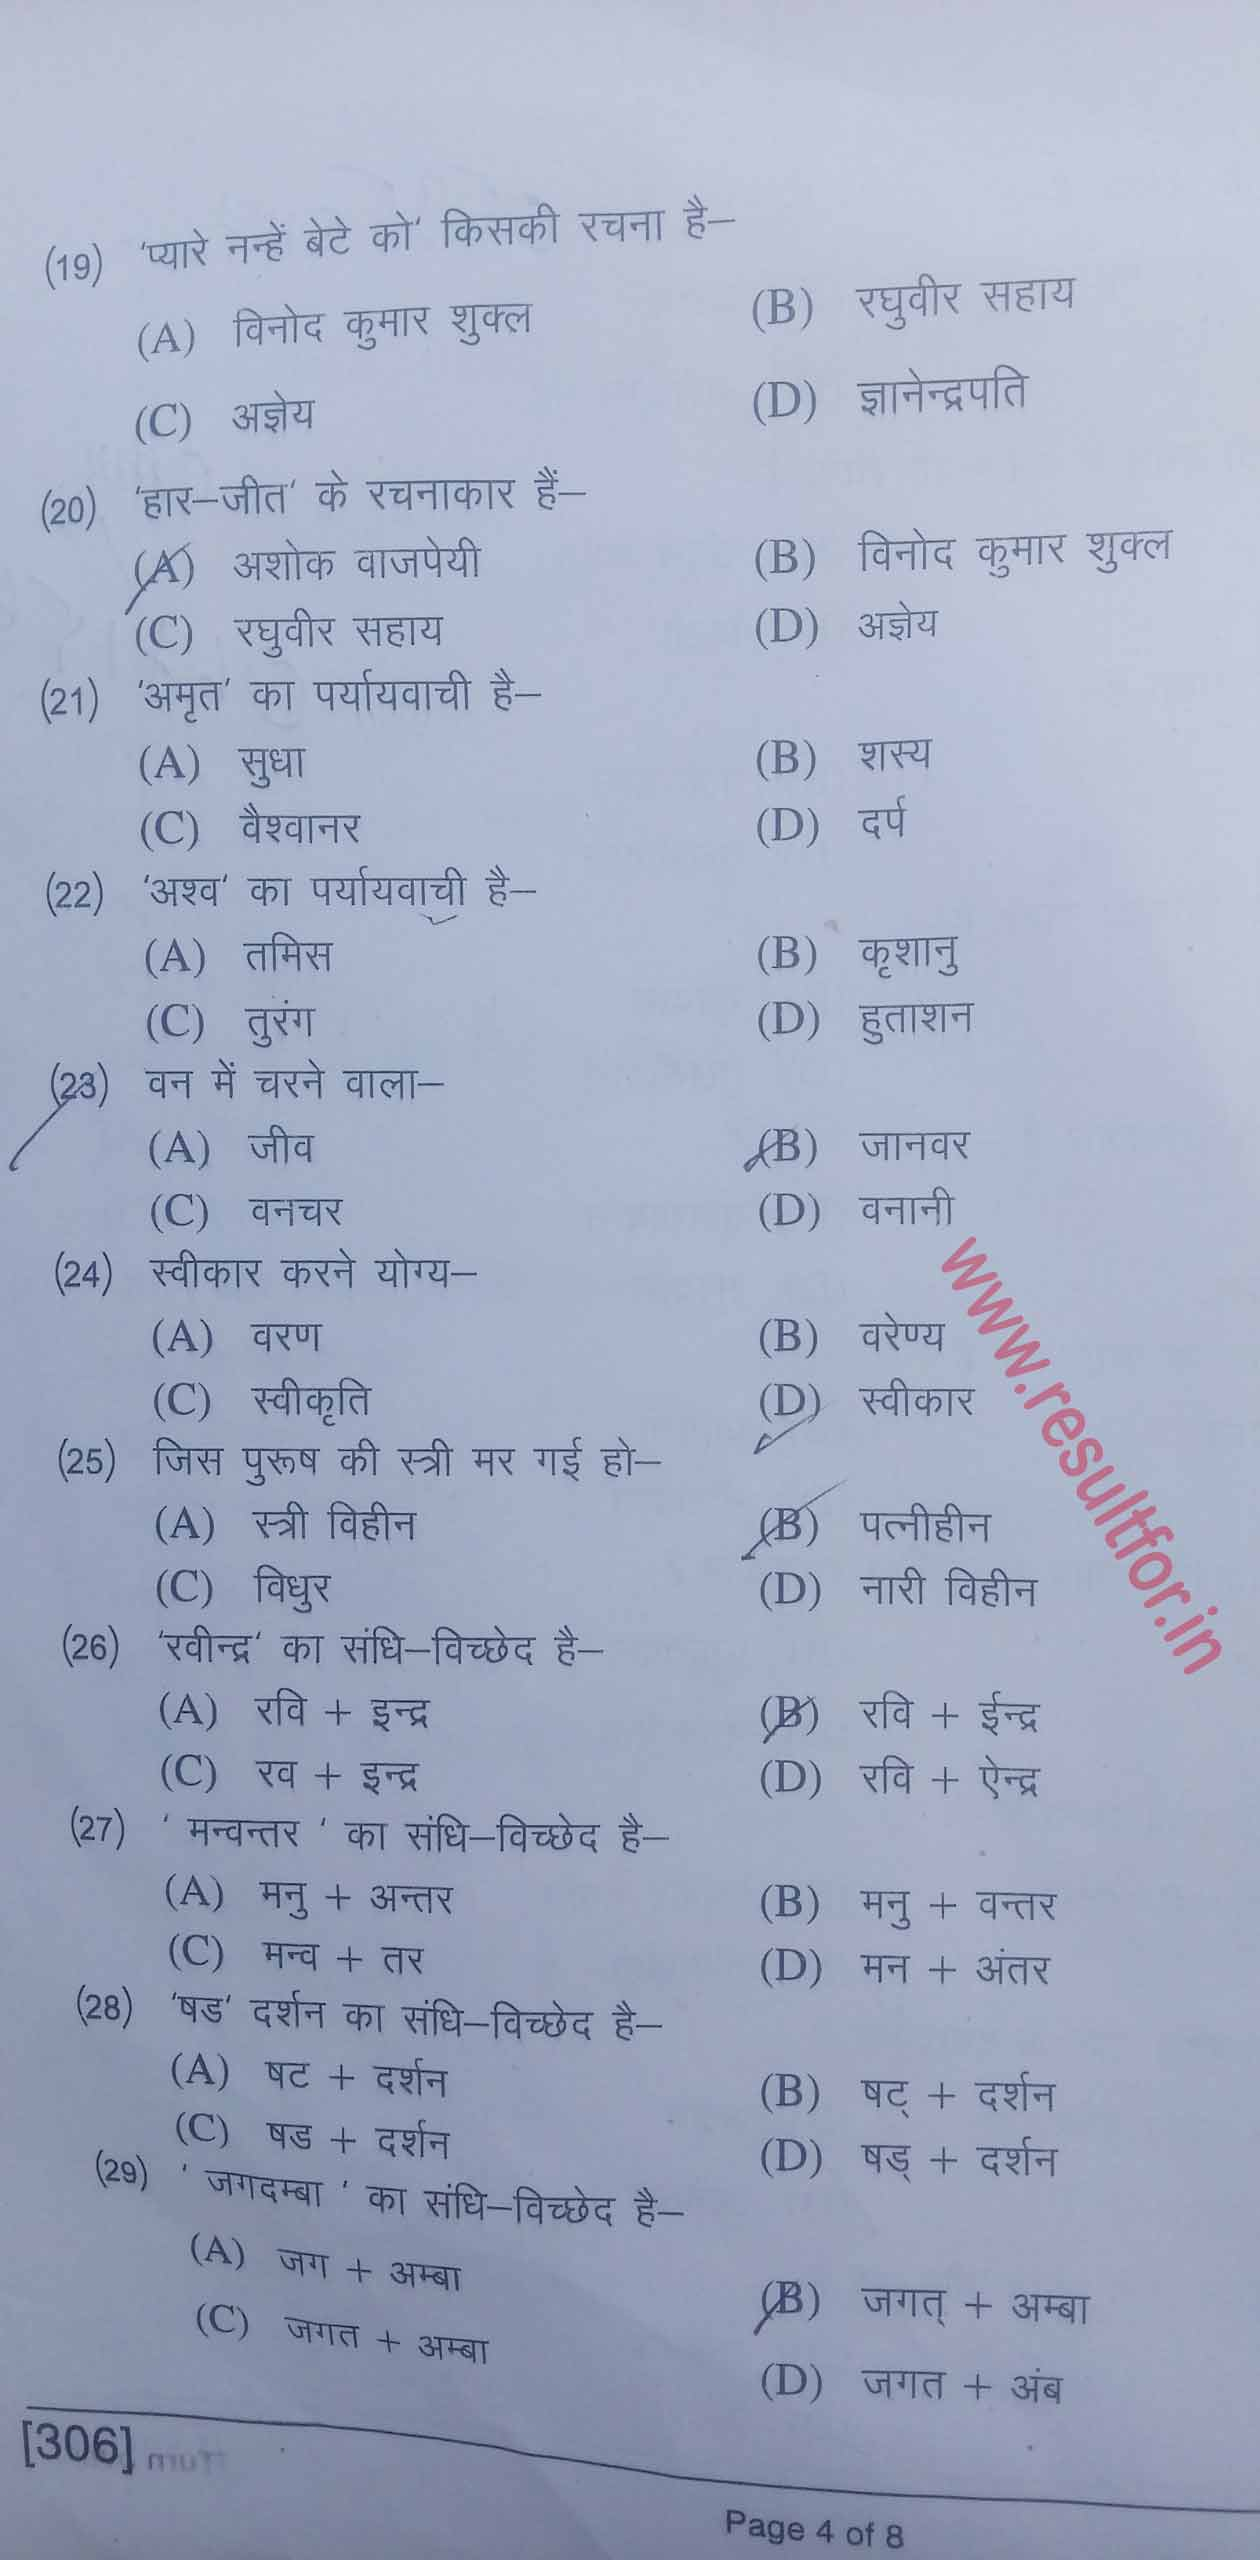 BSEB XIIth Arts Hindi Exam Questions 2018